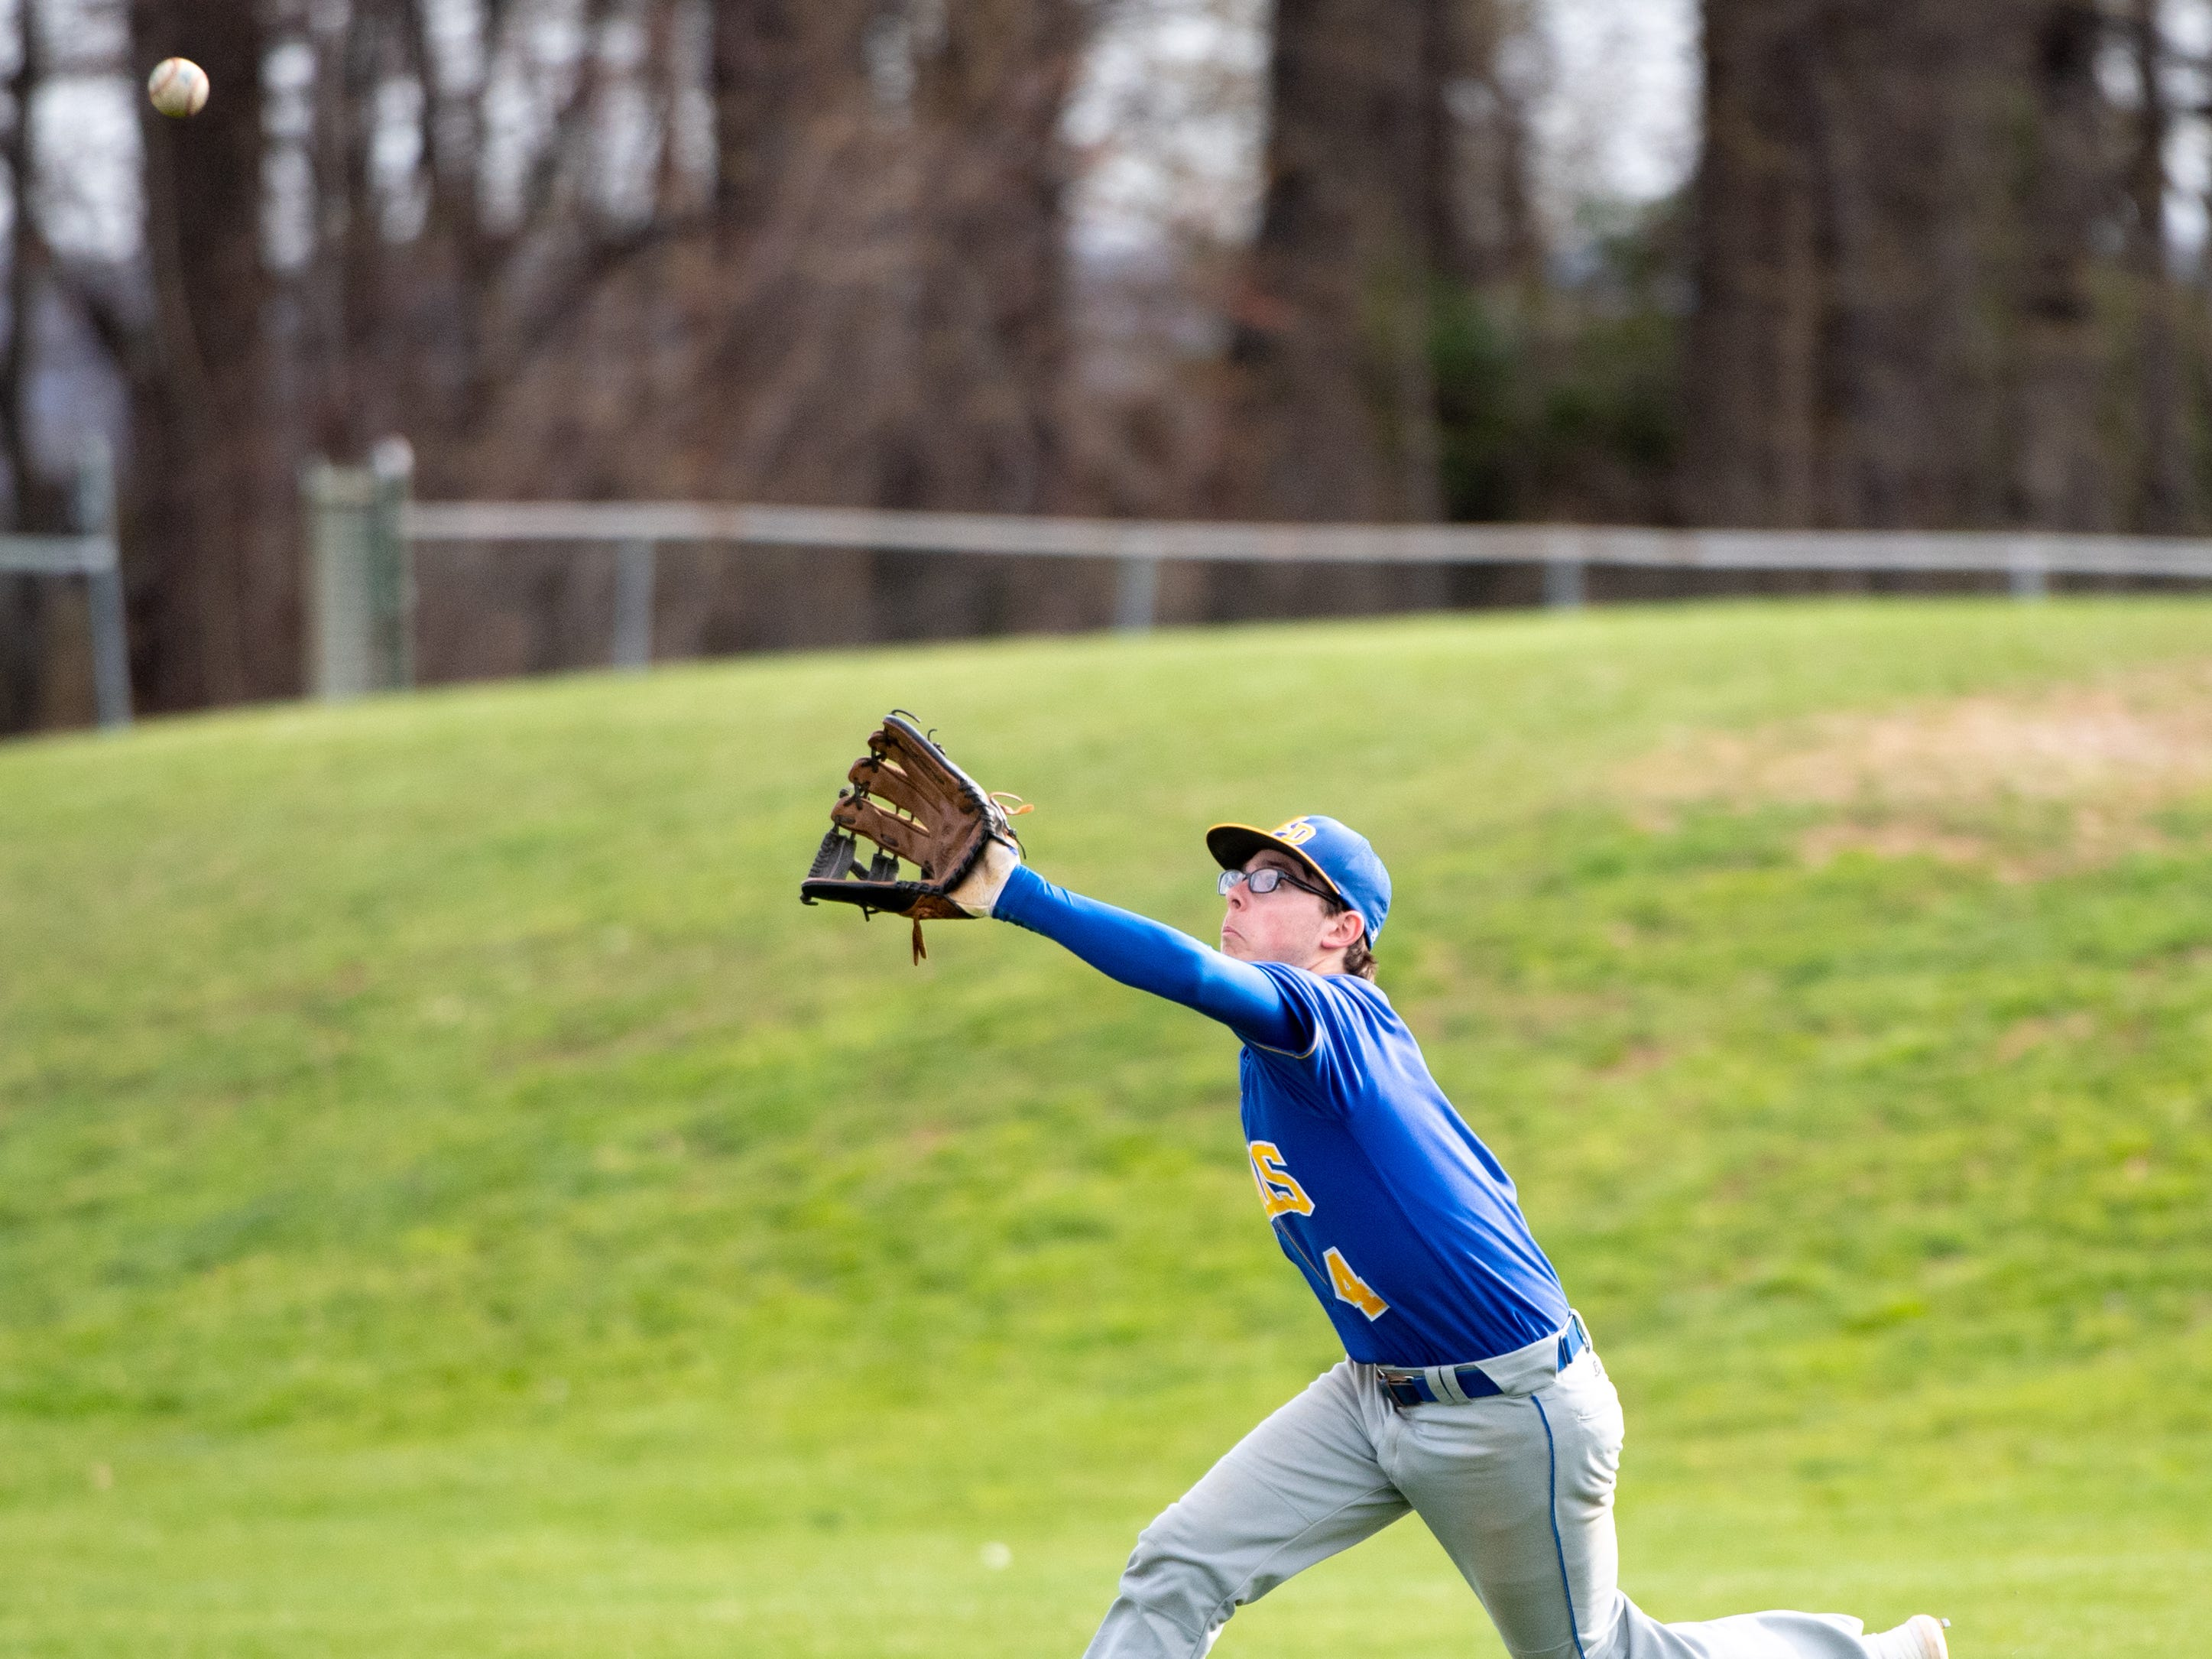 Jason Williams (4) looks to make the catch in the outfield during the baseball game between Eastern York and Kennard-Dale, April 10, 2019 at Eastern York High School. The Golden Knights defeated the Rams 8 to 1.